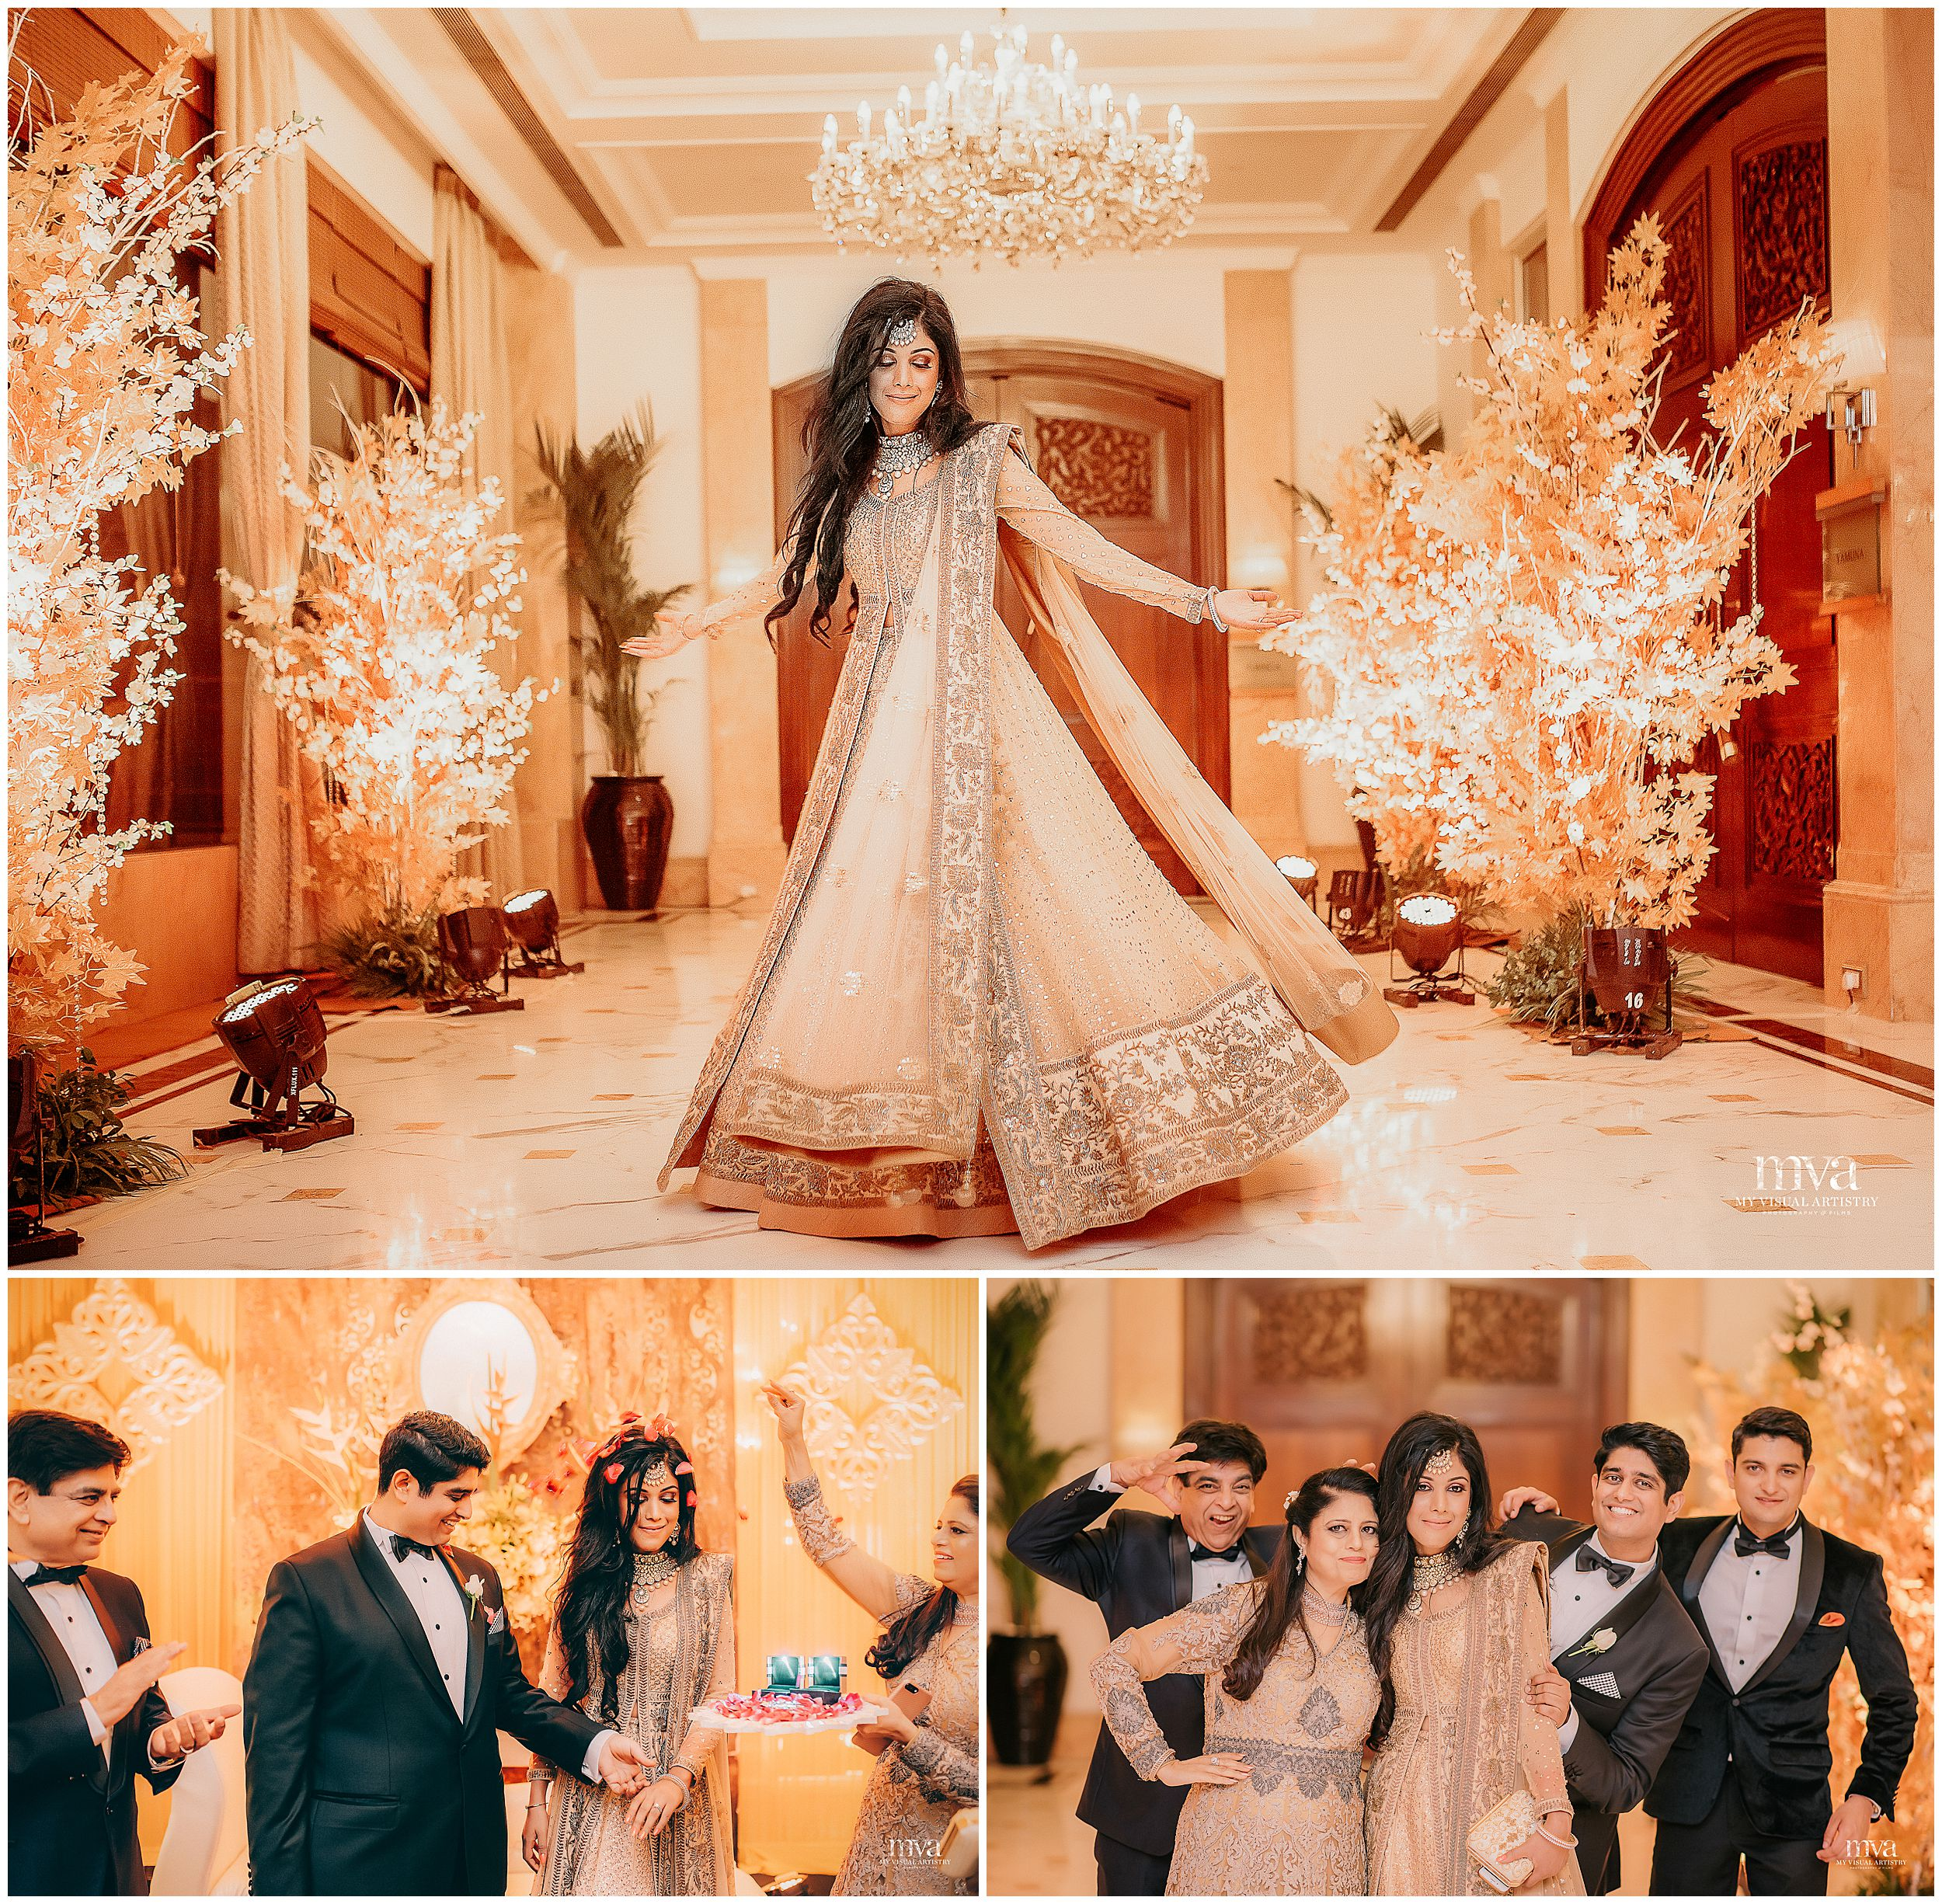 SIDDARTH_SAKSHI_MYVISUALARTISTRY_WEDDING_PHOTOGRAPHY_MVA_EROSHANGRILA_DELHI_0006.jpg